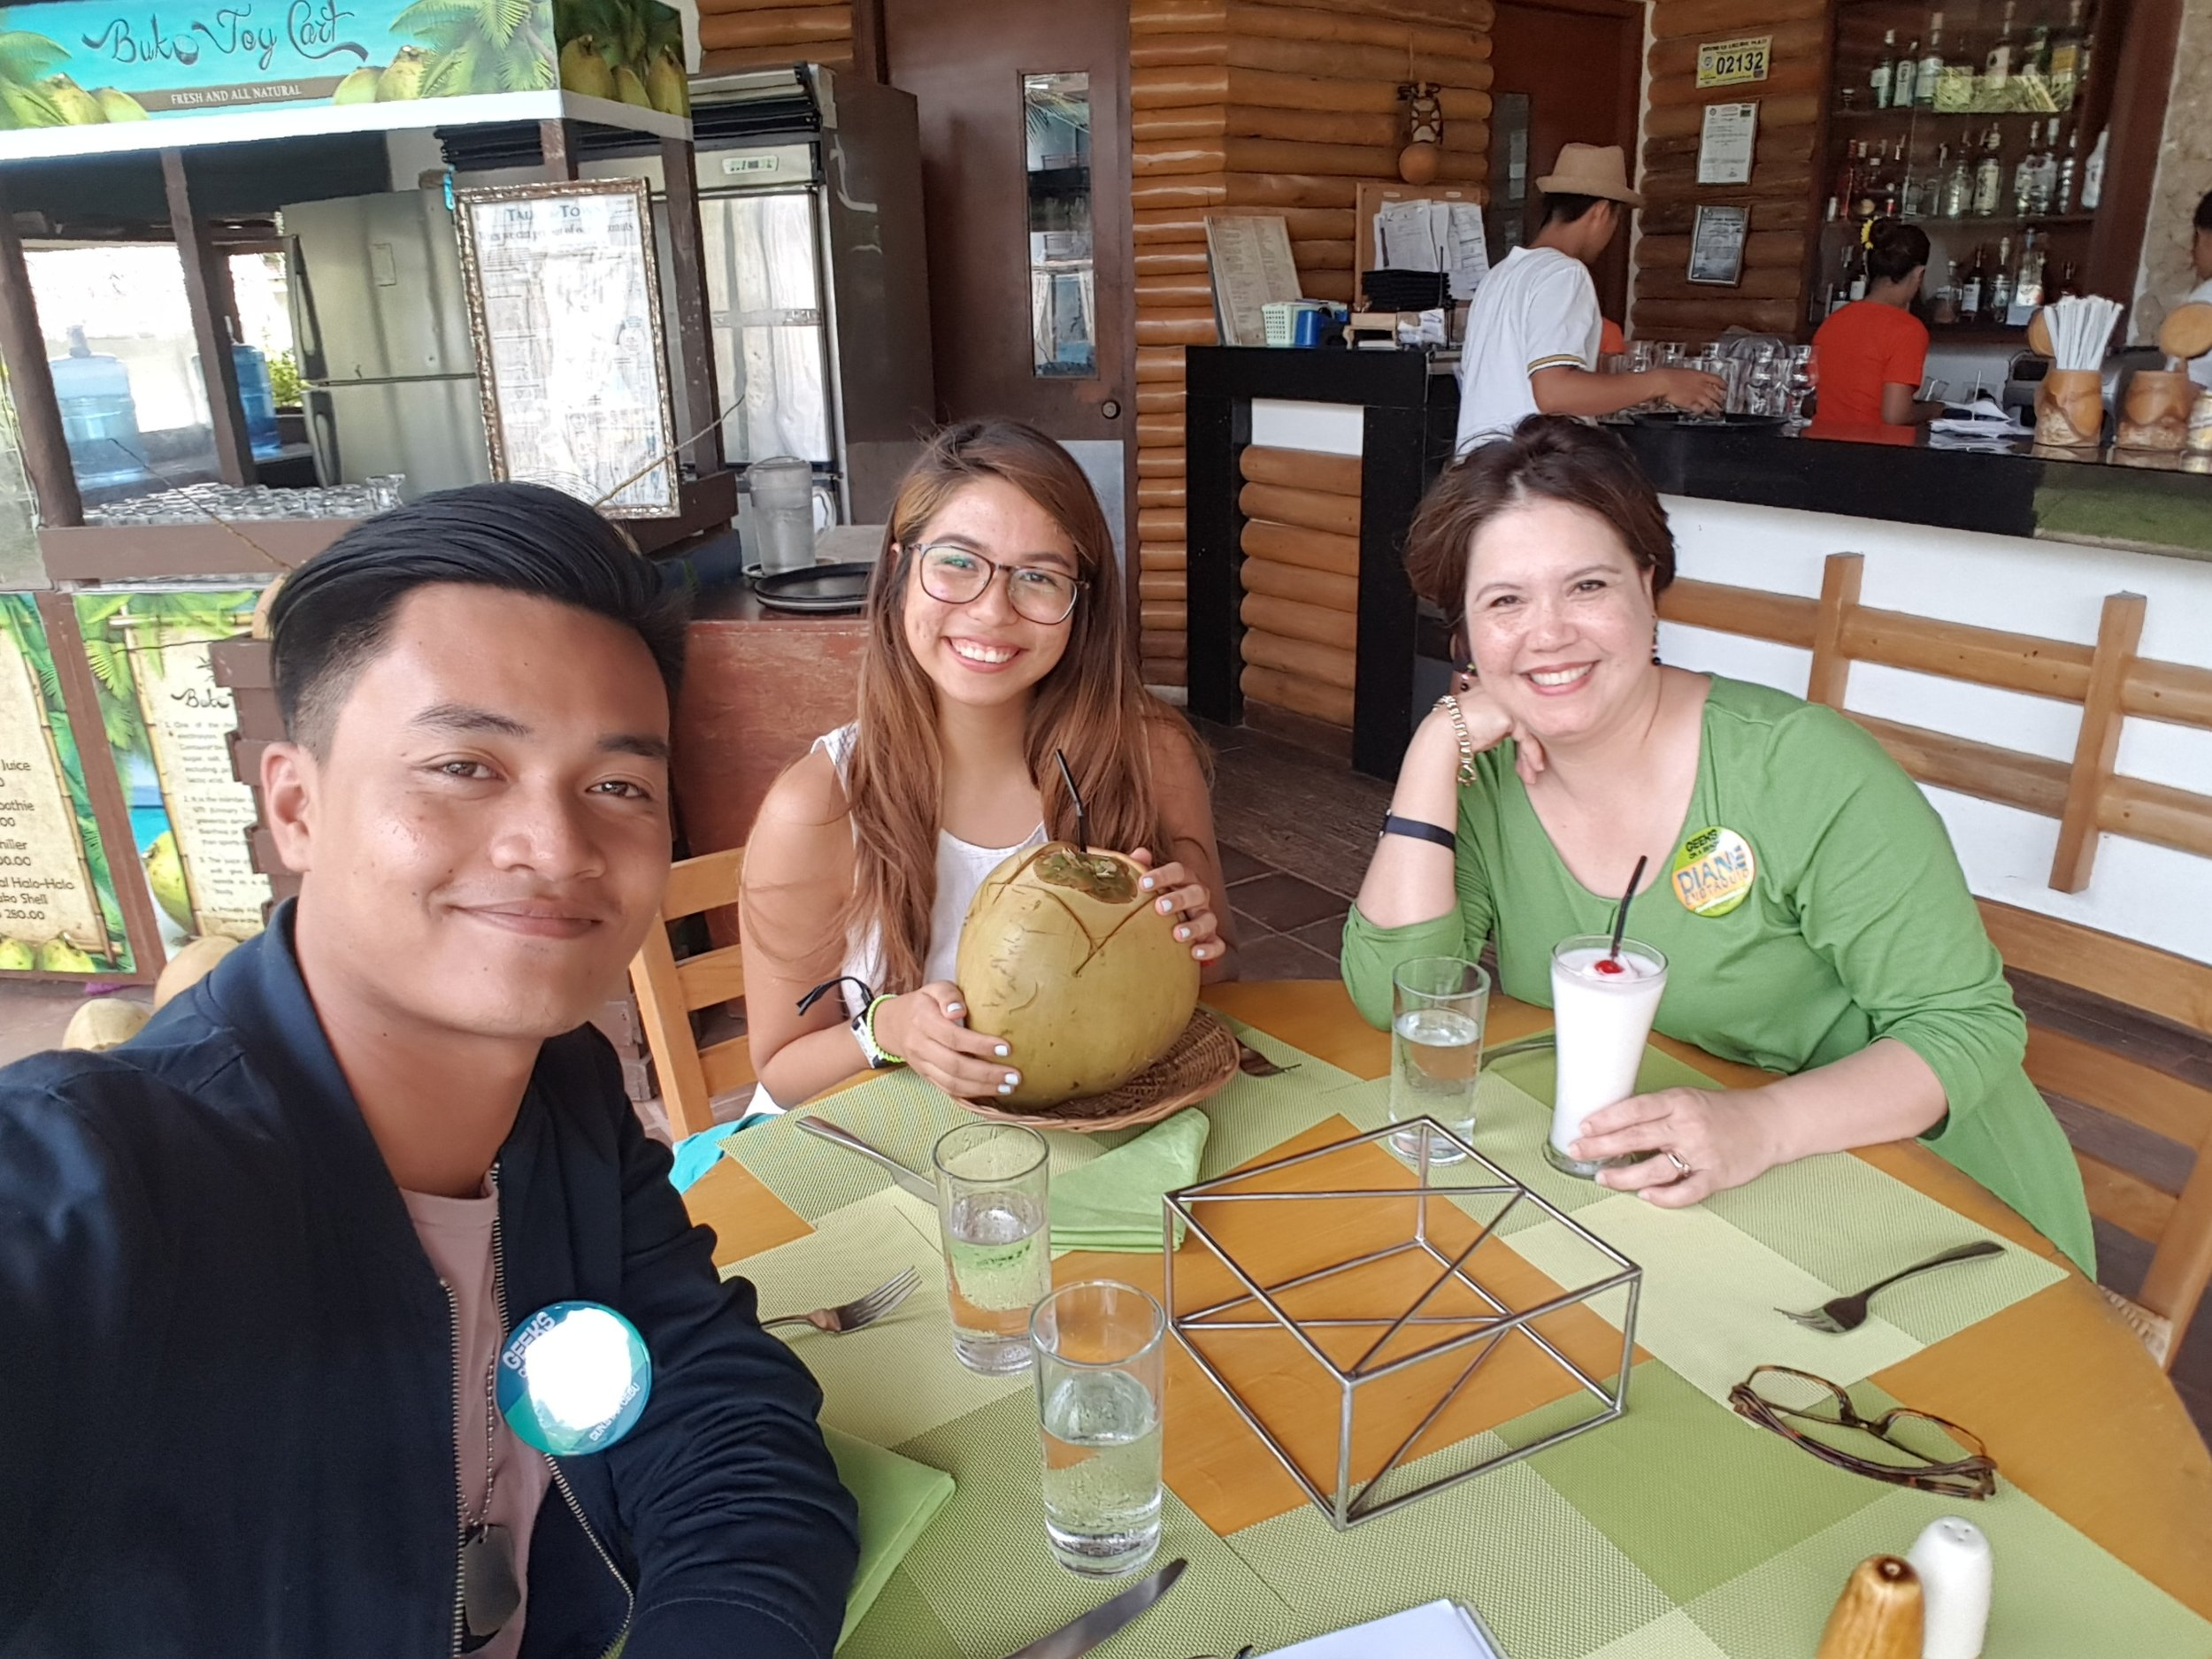 Ticking off my digital nomad bucket list with fresh buko and the pleasurable company of Ace Perez of Sunstar Davao and Diane Estaquio, executive director of IdeaSpace Foundation.